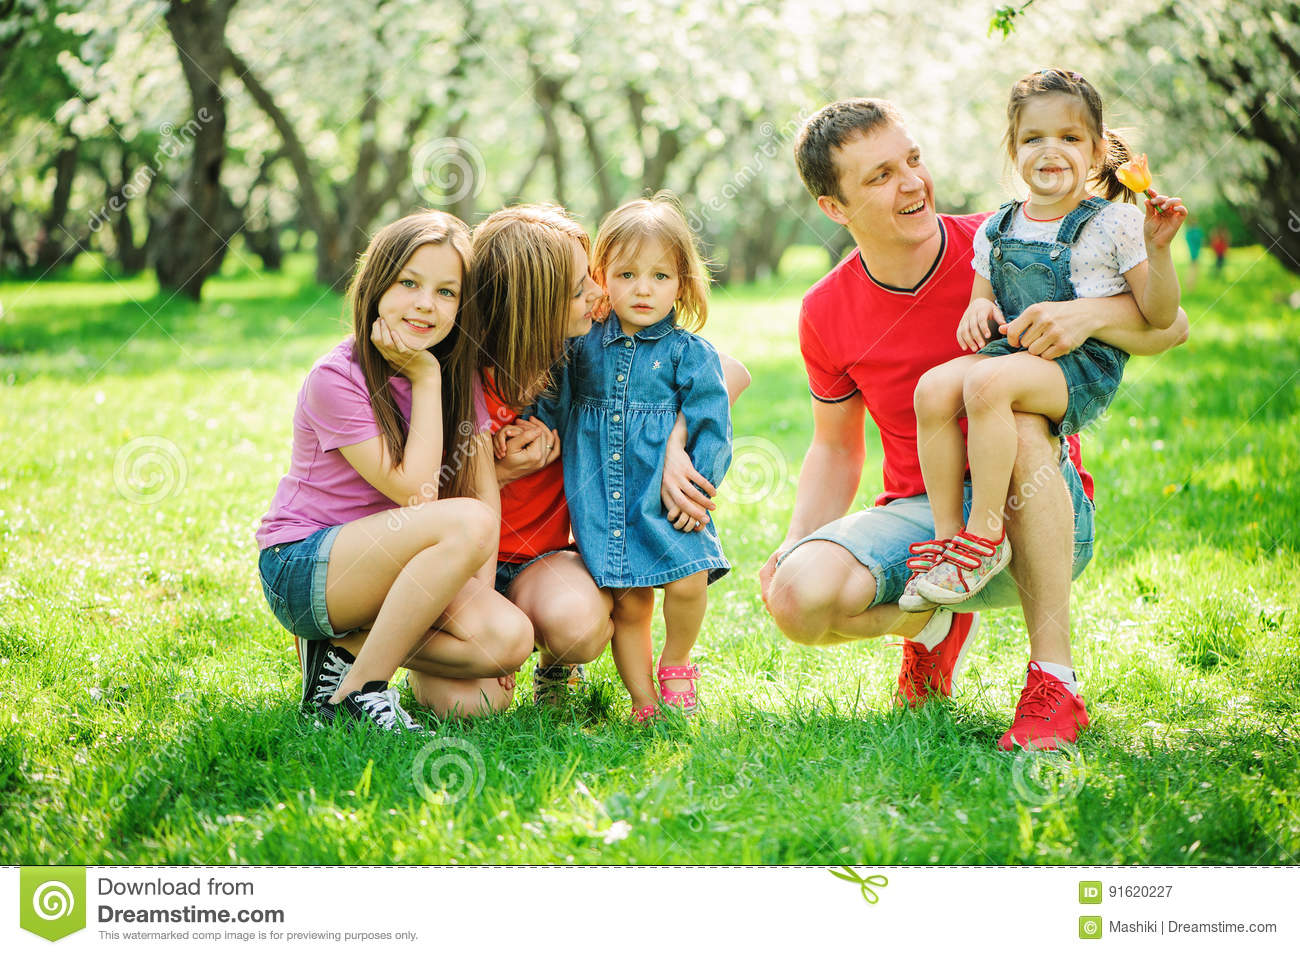 Big family with three little daughters spending time together in summer park, mother, father and sisters having fun